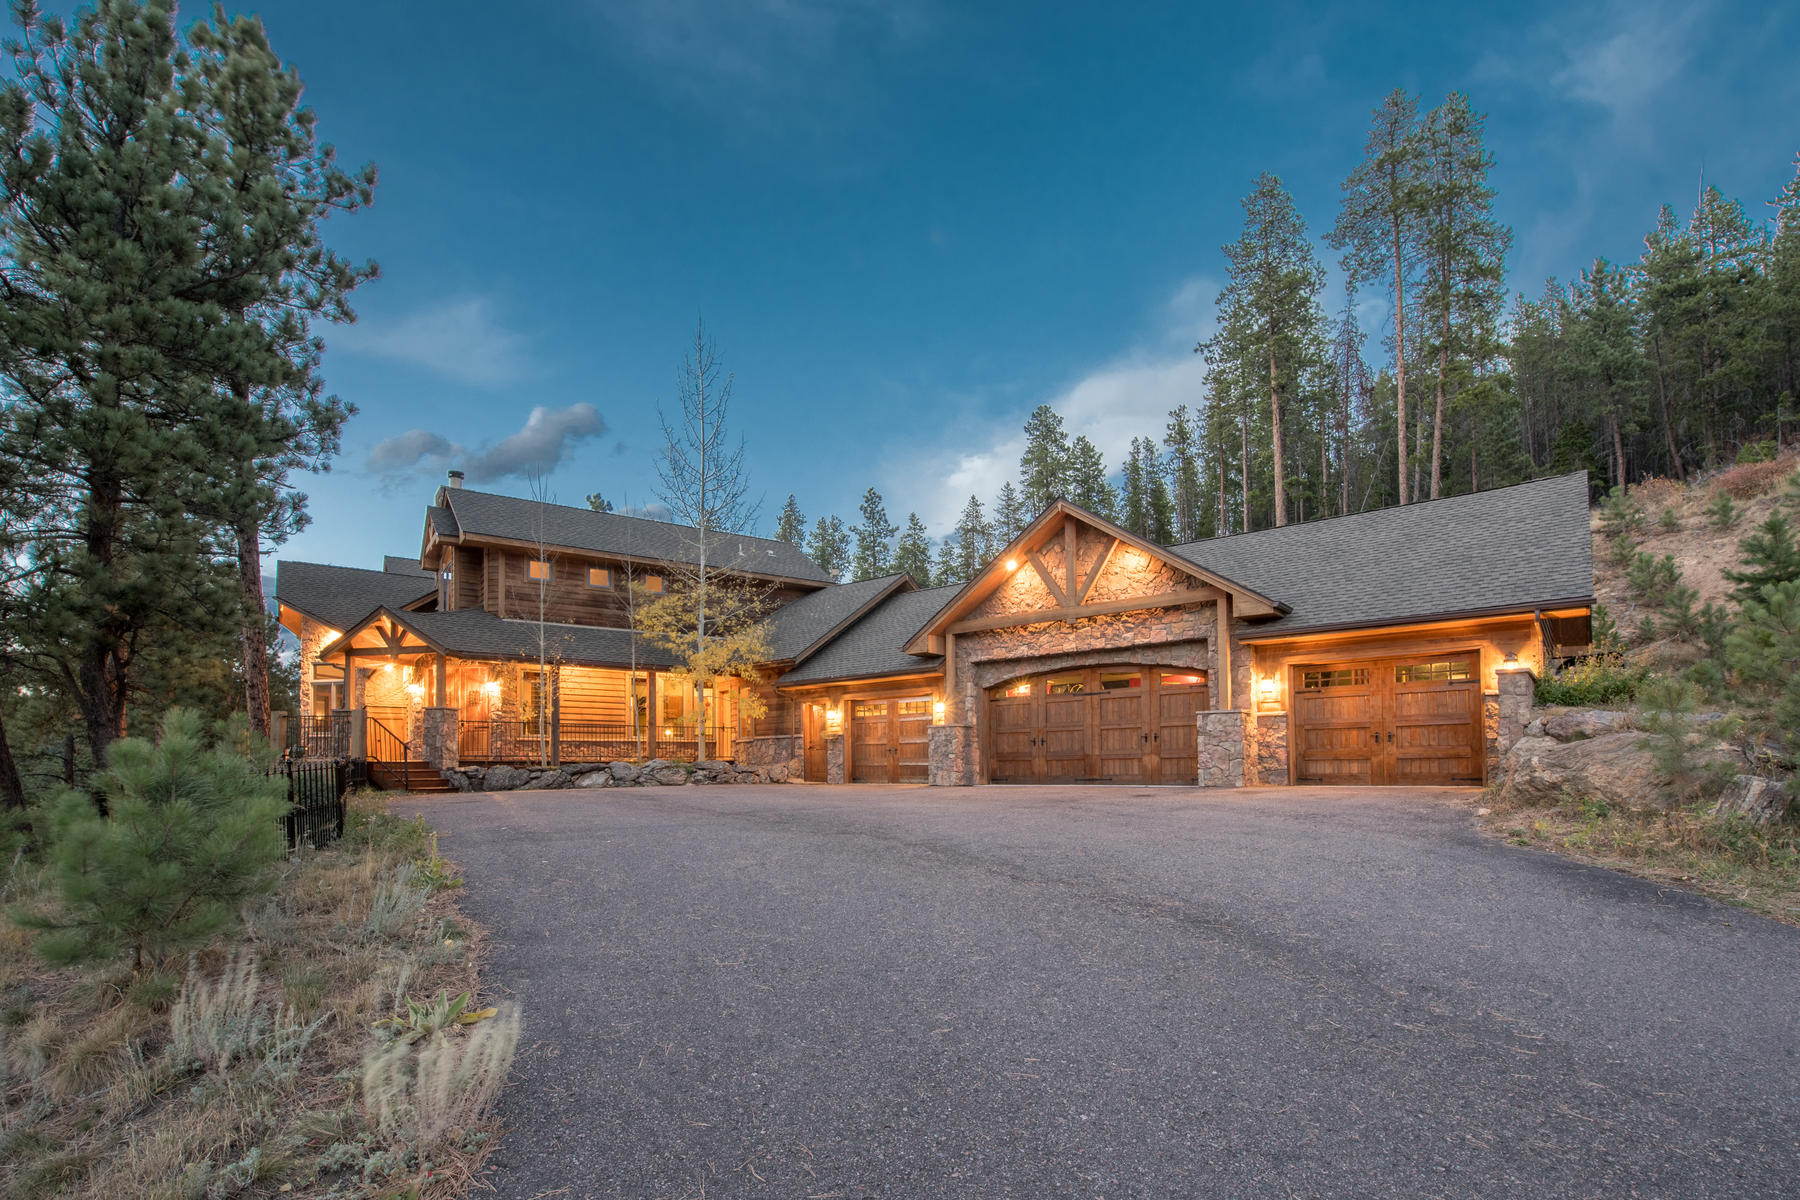 一戸建て のために 売買 アット Quintessential Colorado living defines this impressive property 29528 Blue Moon Drive Evergreen, コロラド, 80439 アメリカ合衆国